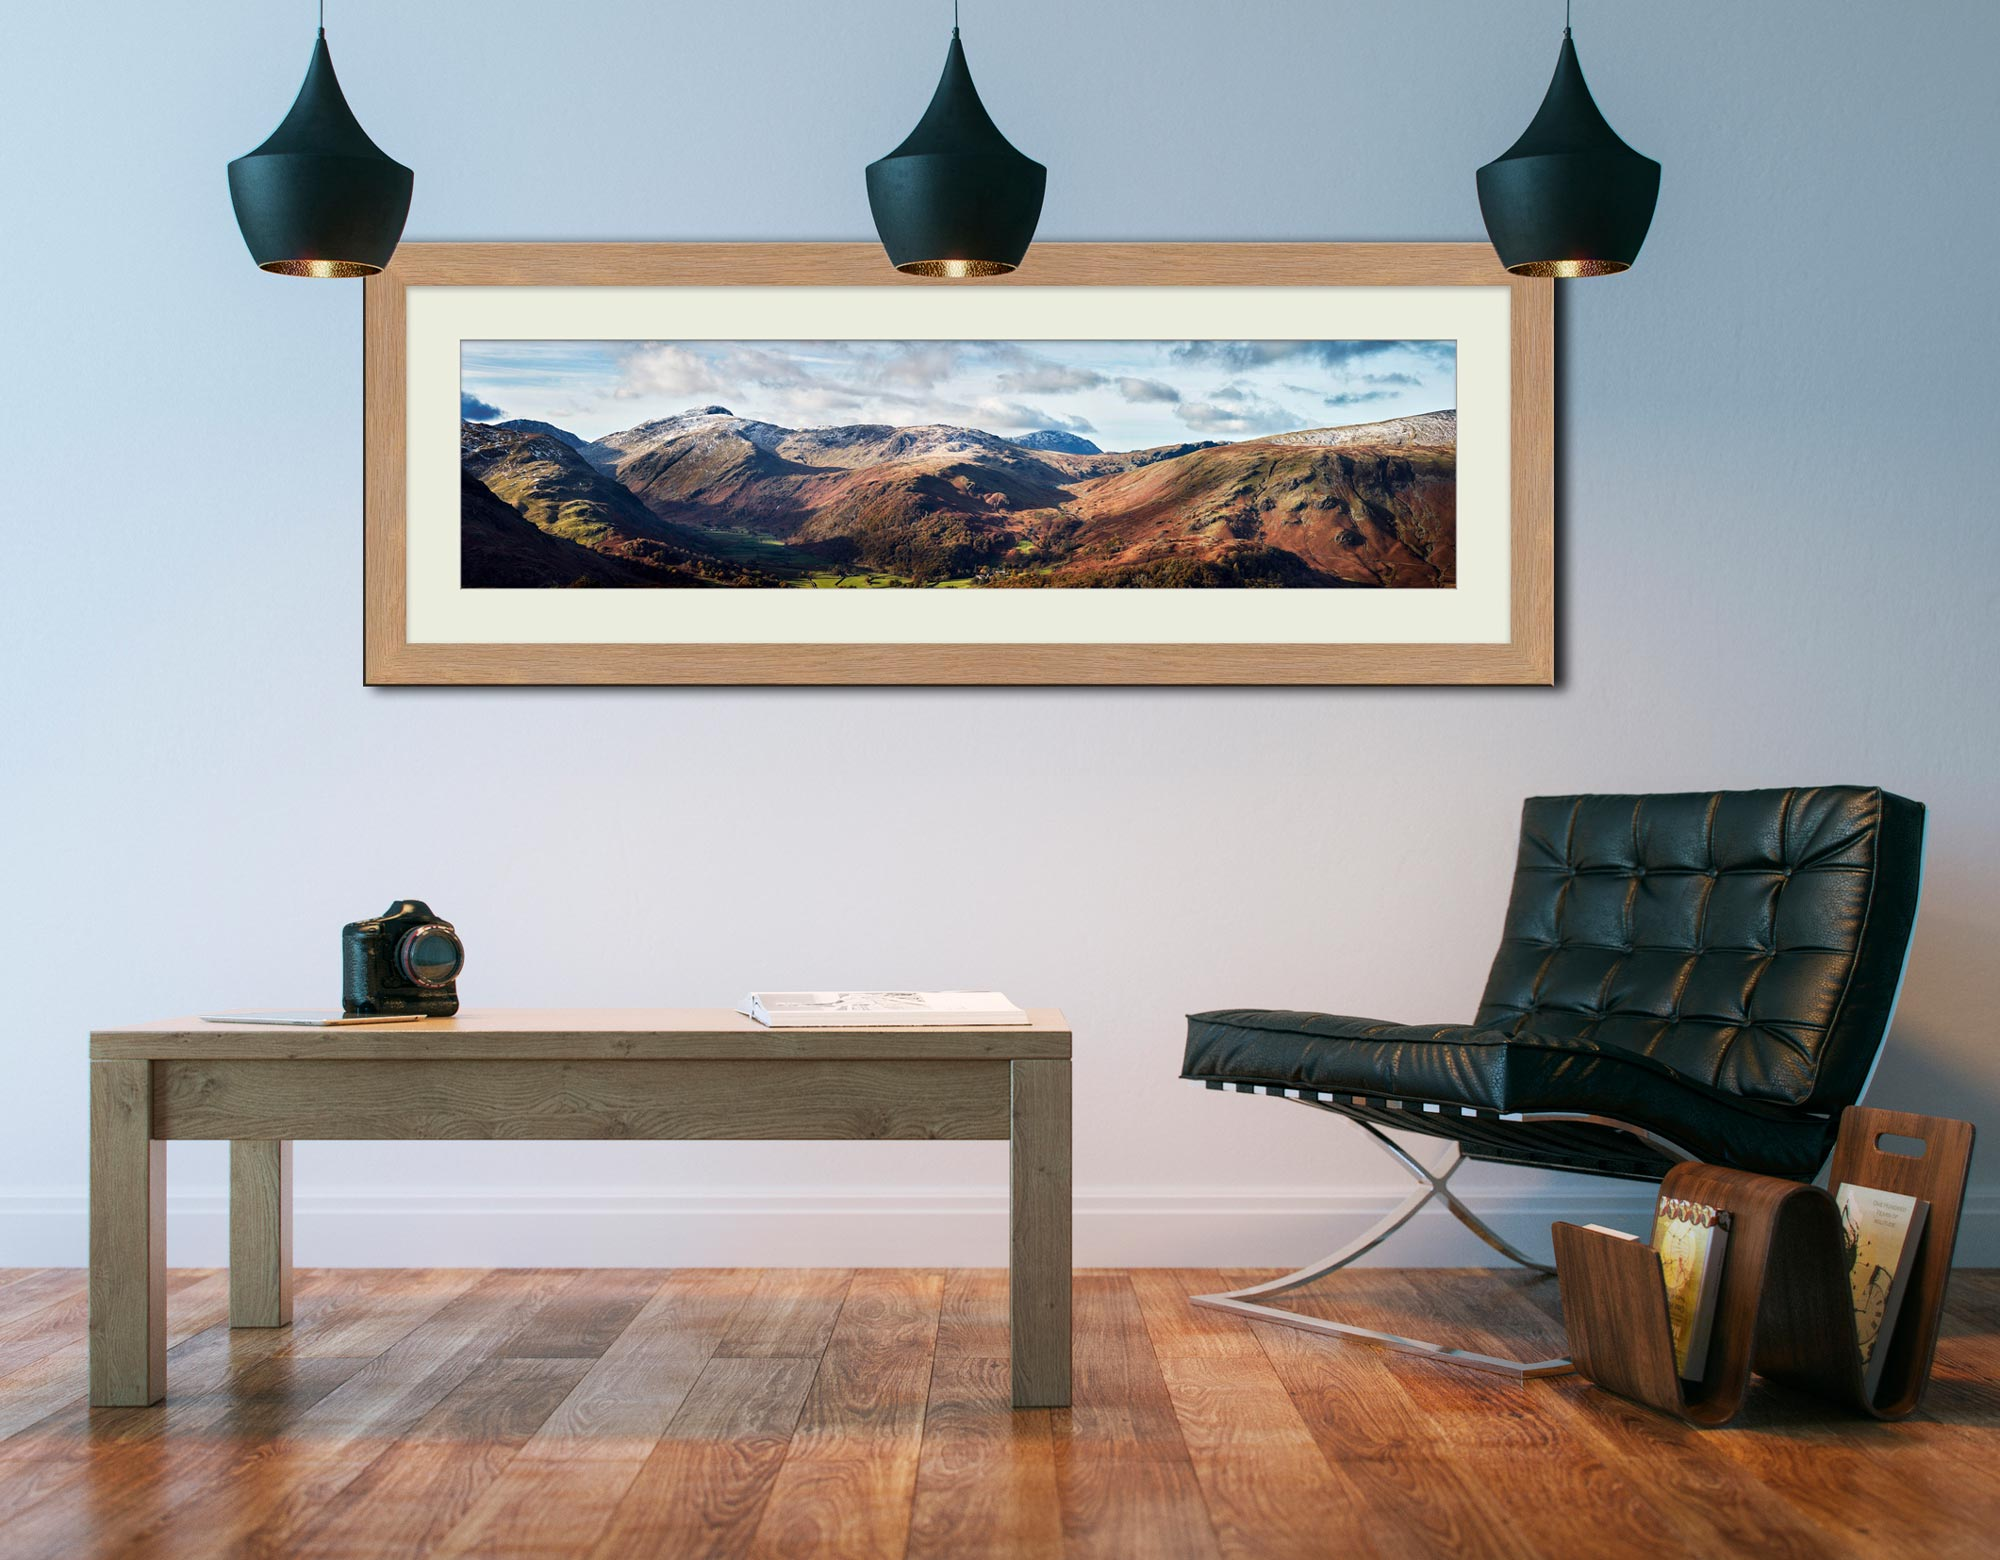 Borrowdale Mountains Panorama - Framed Print with Mount on Wall